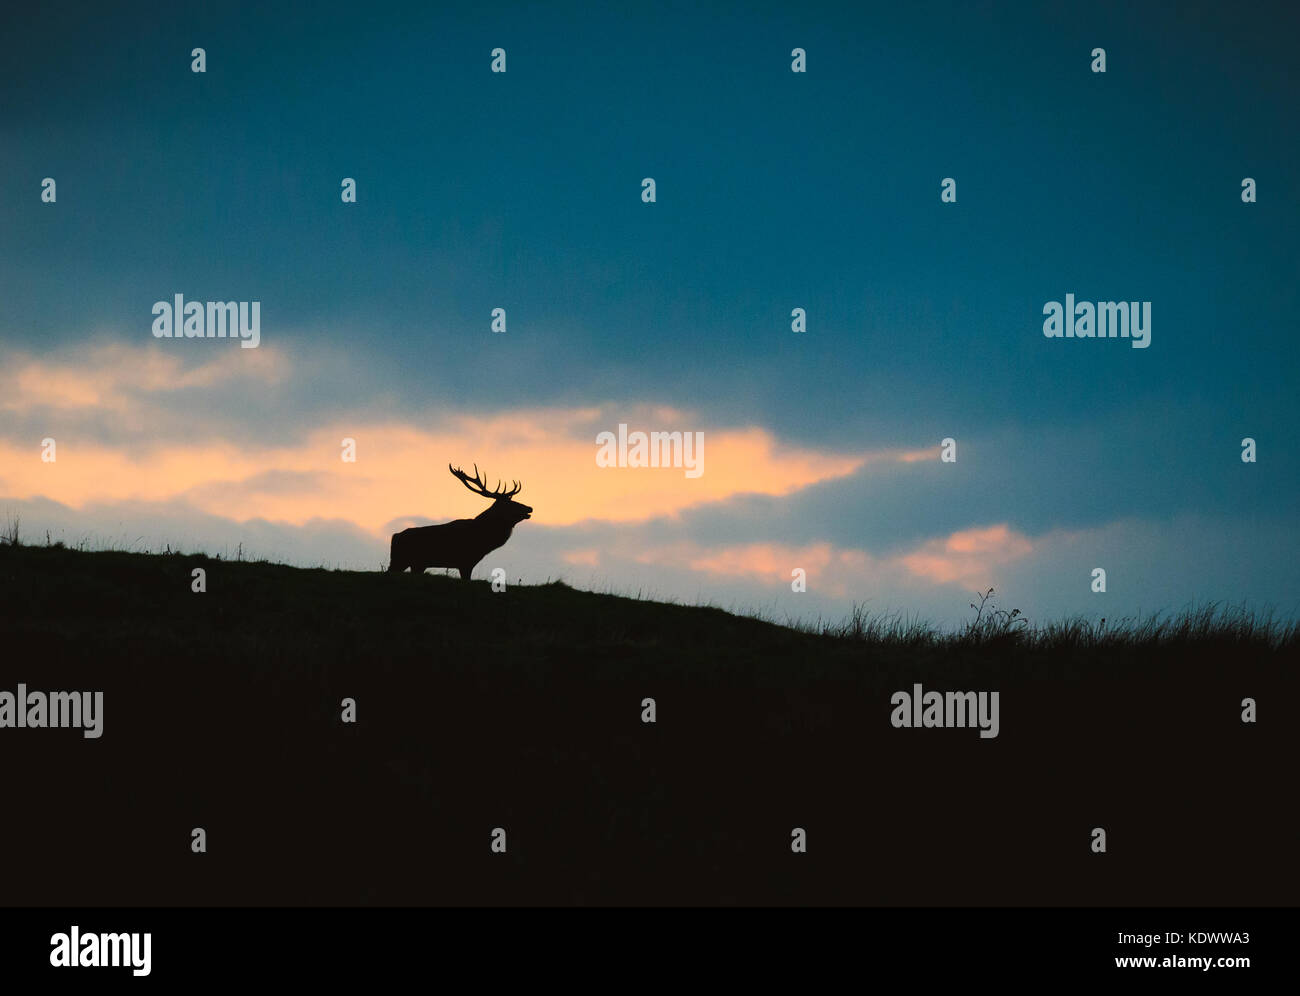 A Red Deer Stag and doe silhouetted against the evening sky in the peak district during autumn rutting season. - Stock Image